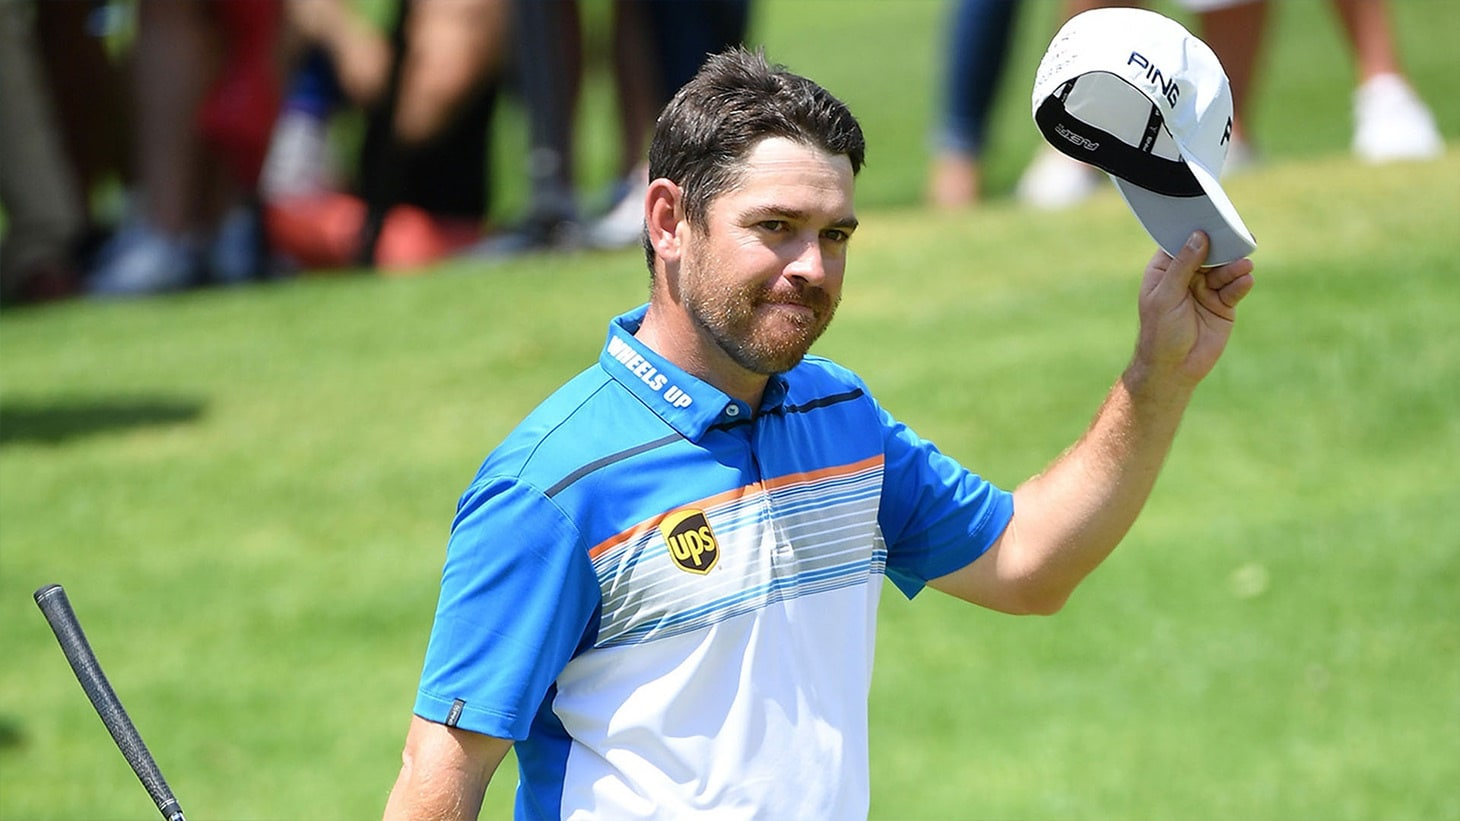 Louis Oosthuizen salutes the crowd after winning the 2019 South African Open